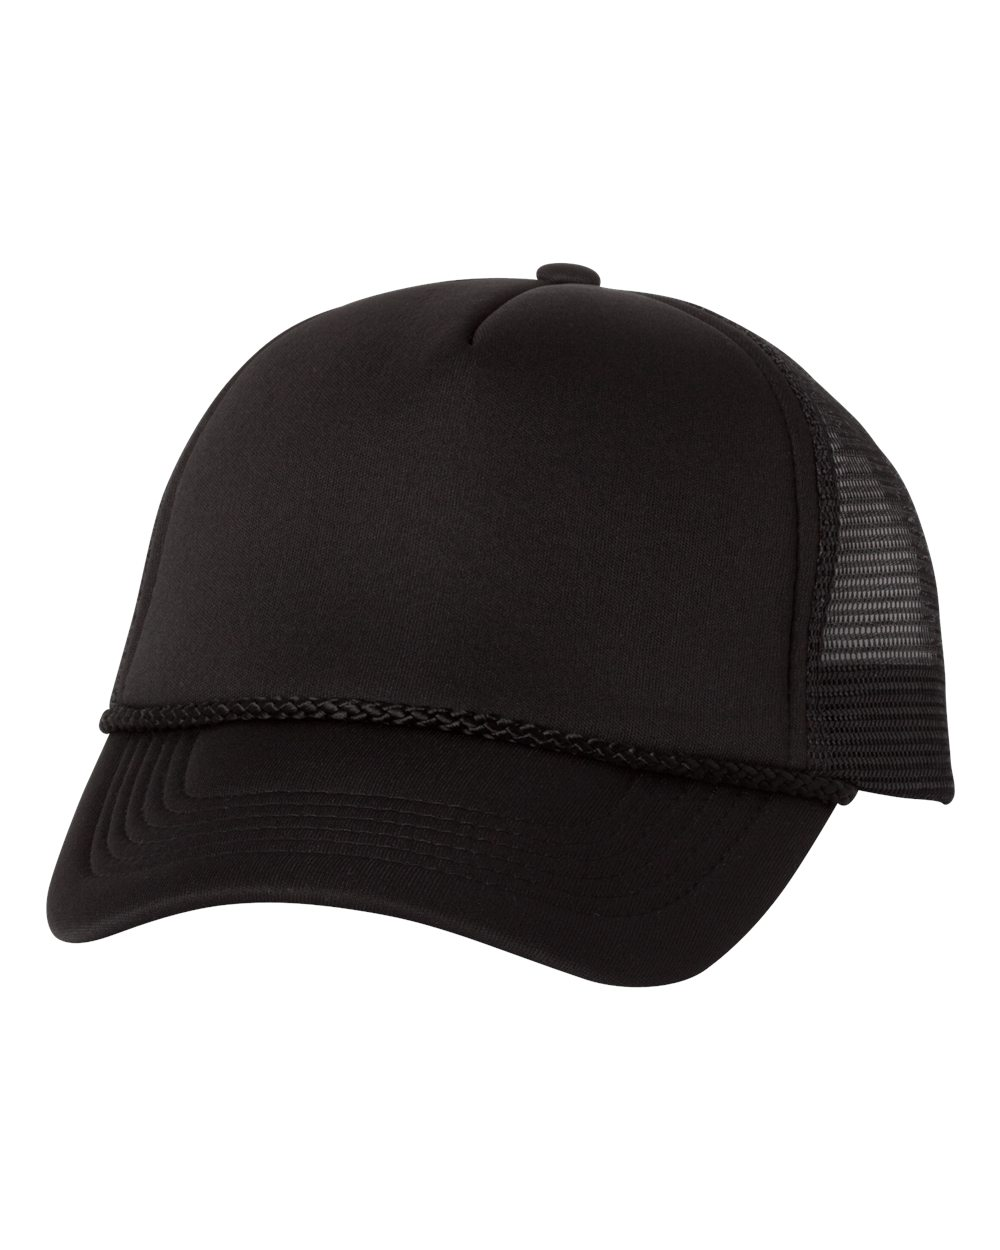 611000e680929 Valucap VC700 - Foam Trucker Cap  2.59 - Headwear